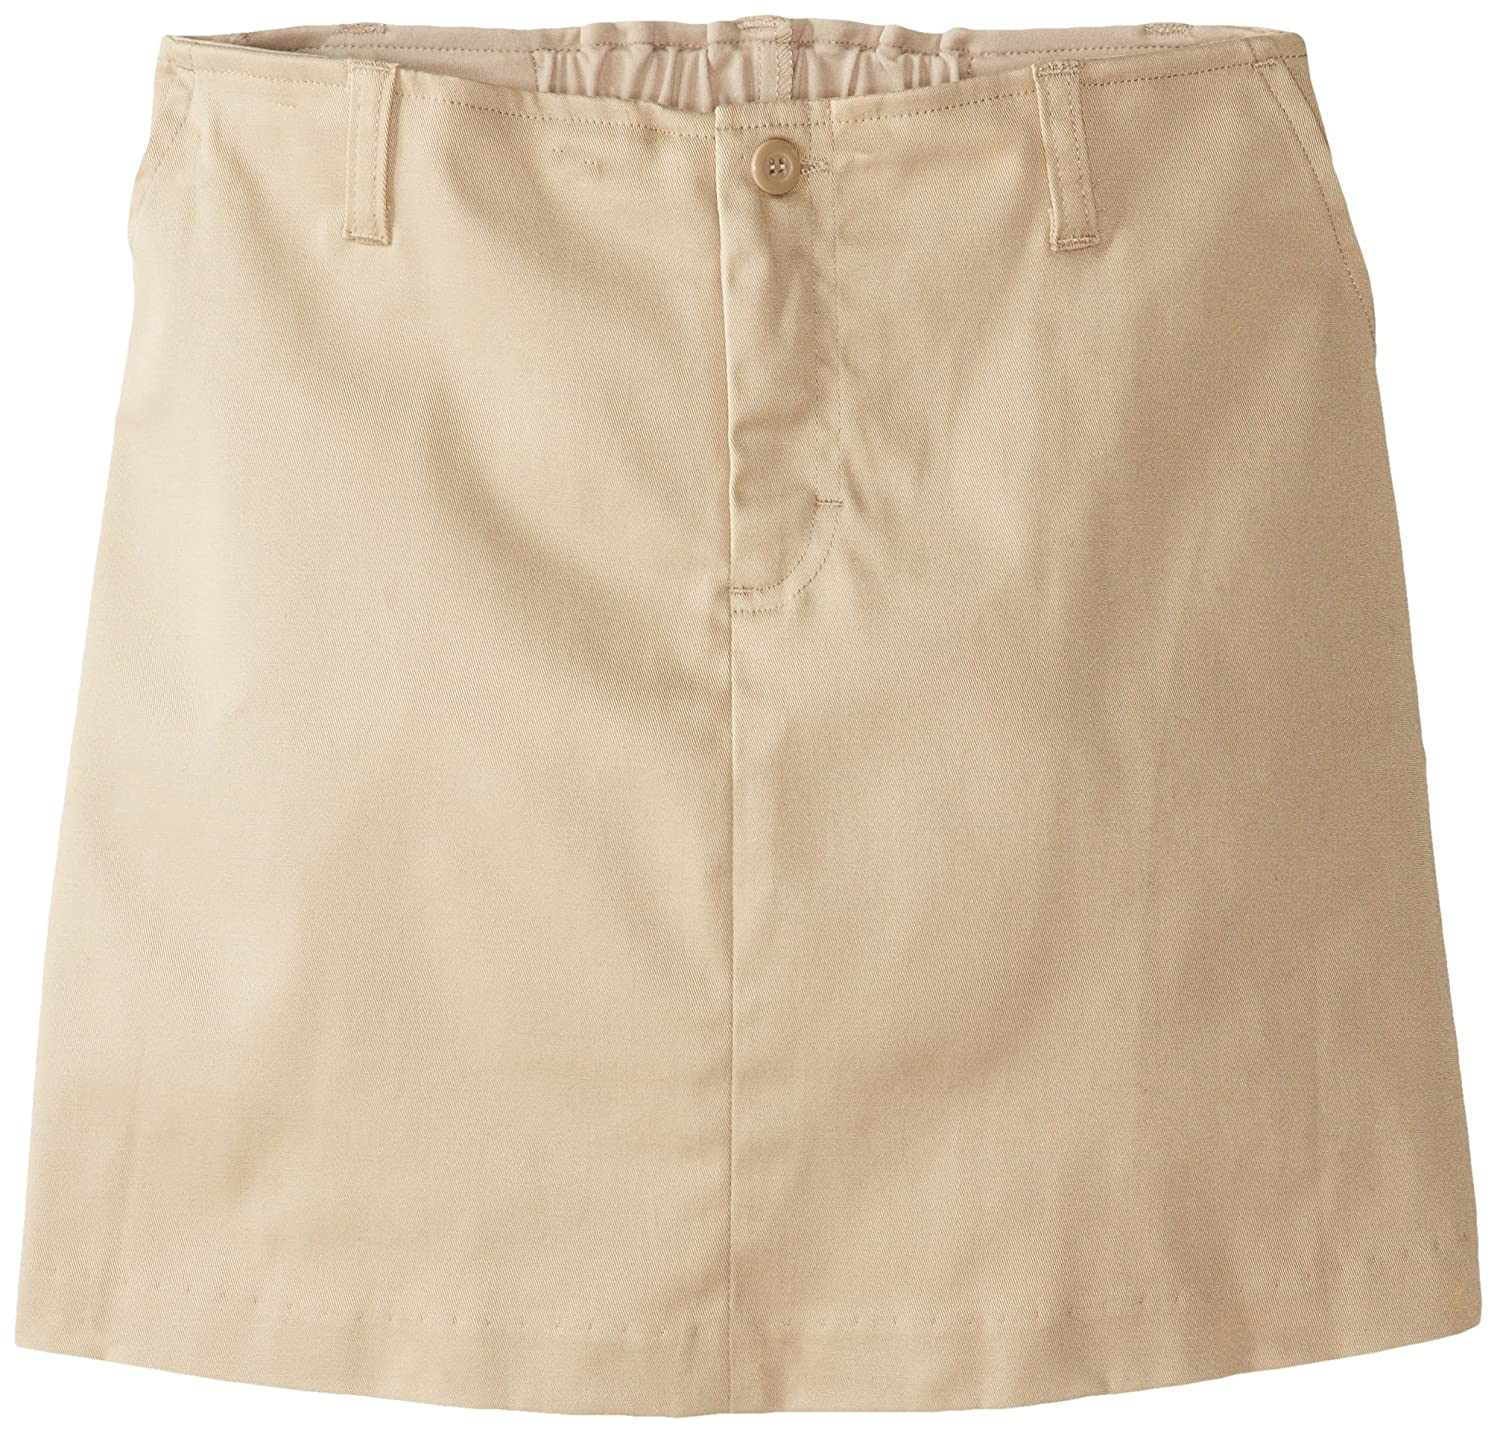 Classroom Girls' Uniform Stretch Fly Front Scooter Skirt 55641